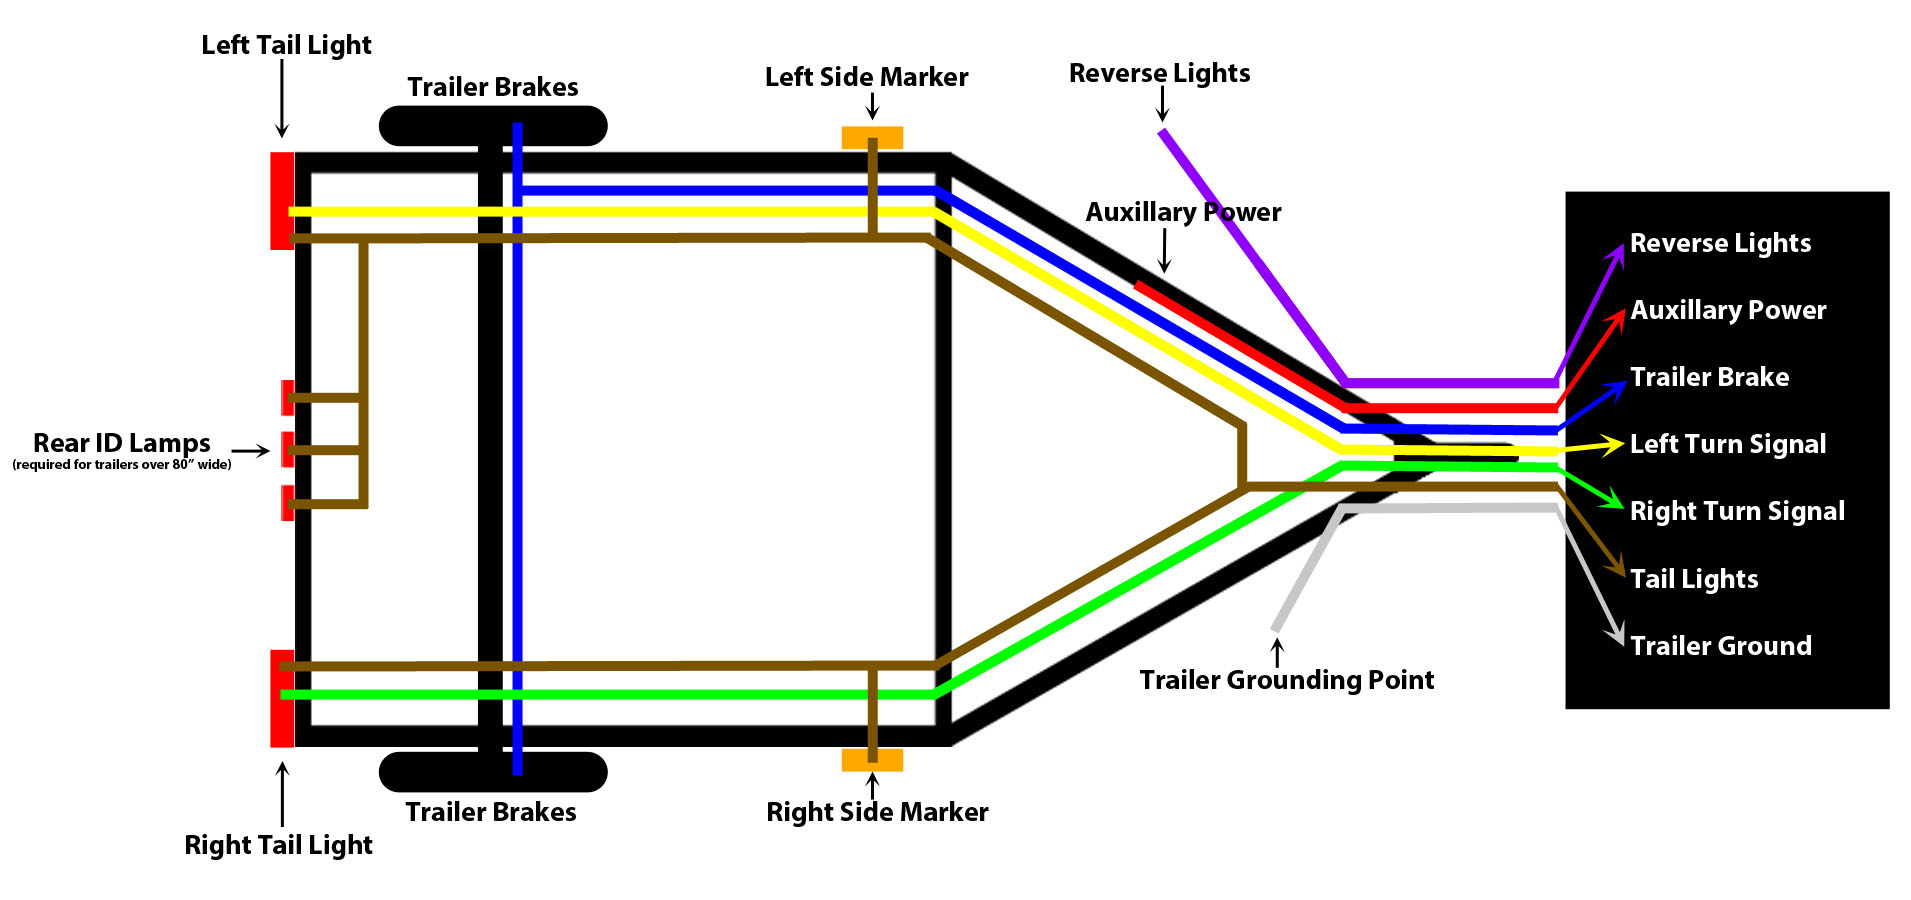 Wiring Diagram Led Trailer Light 4 Wire In For Lights At Tail - Trailer Wiring Diagram Led Lights